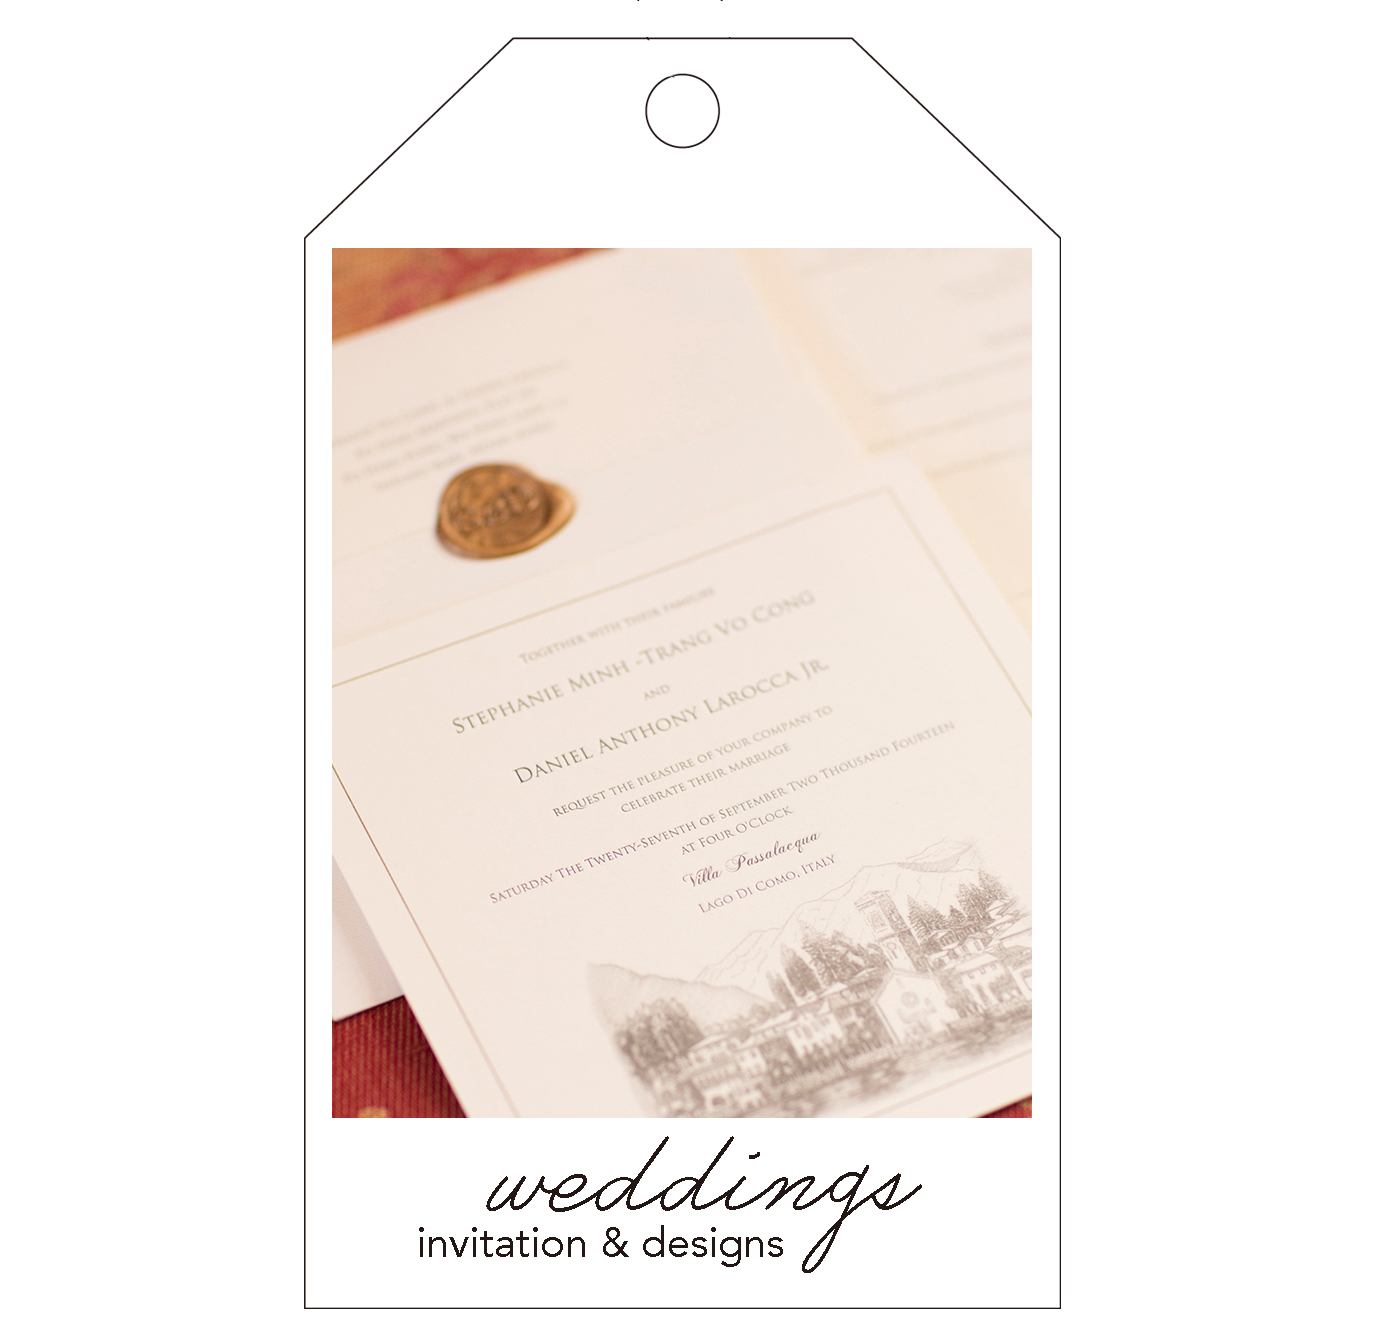 sallbohp_weddings2